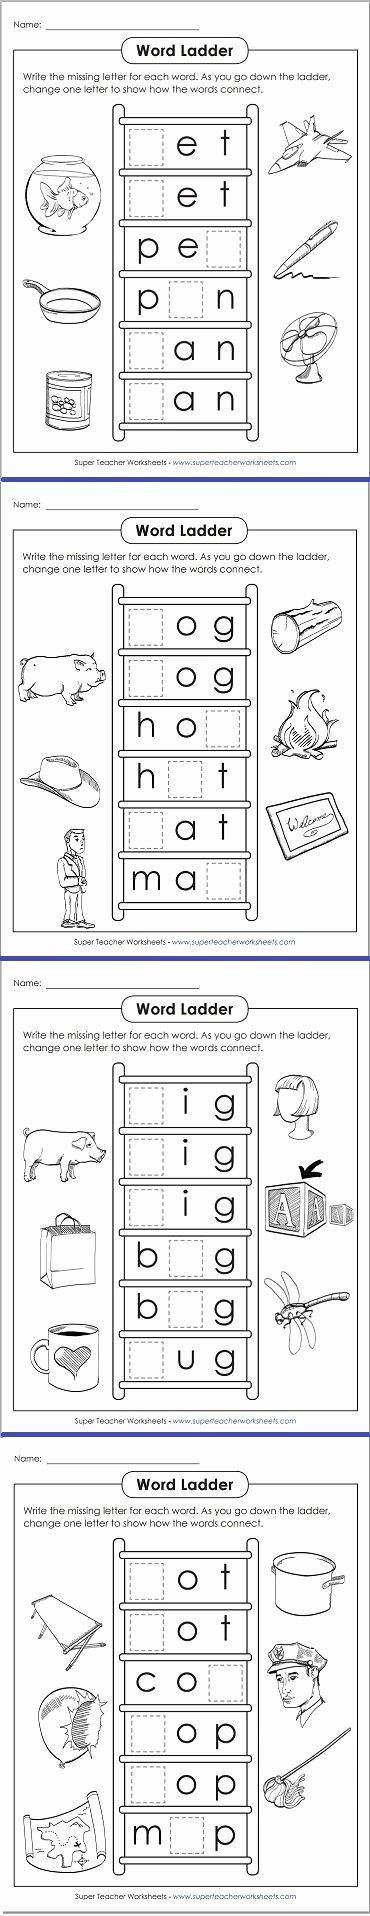 Word Ladder Worksheets Inspirational Take A Look at these Fun Word Ladders for Phonics Practice